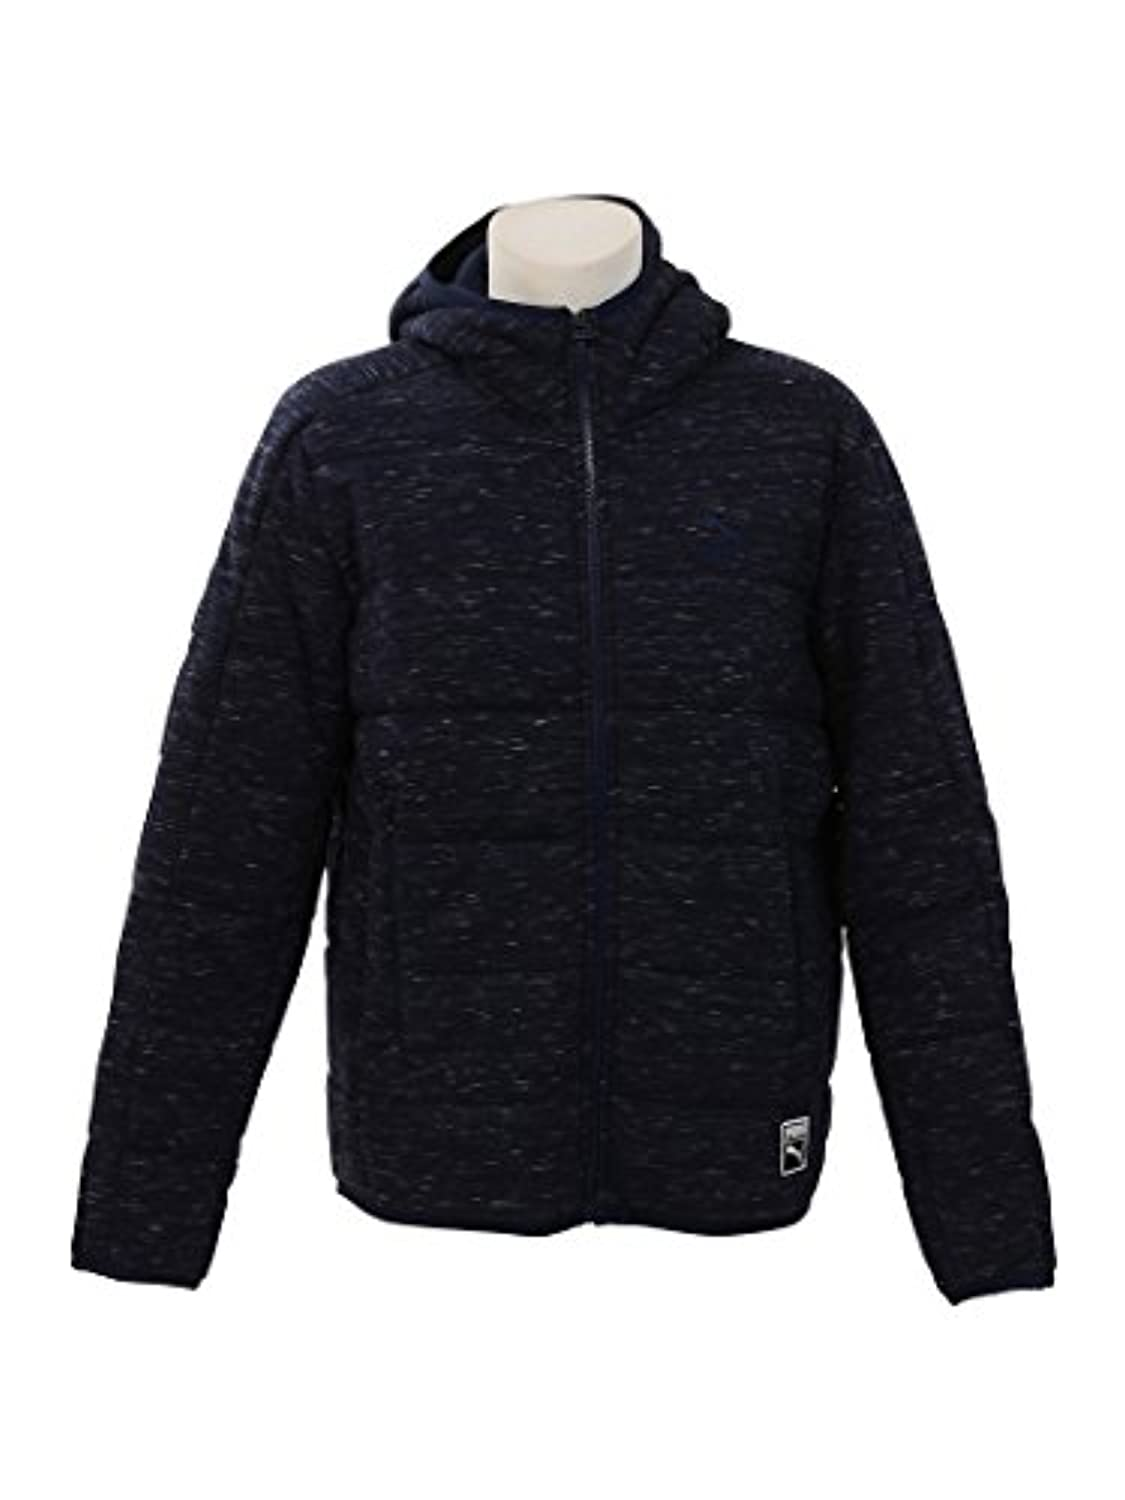 プーマ) PUMA HEATHER PADDED OUTERWEAR XXL ピーコート ヘザー